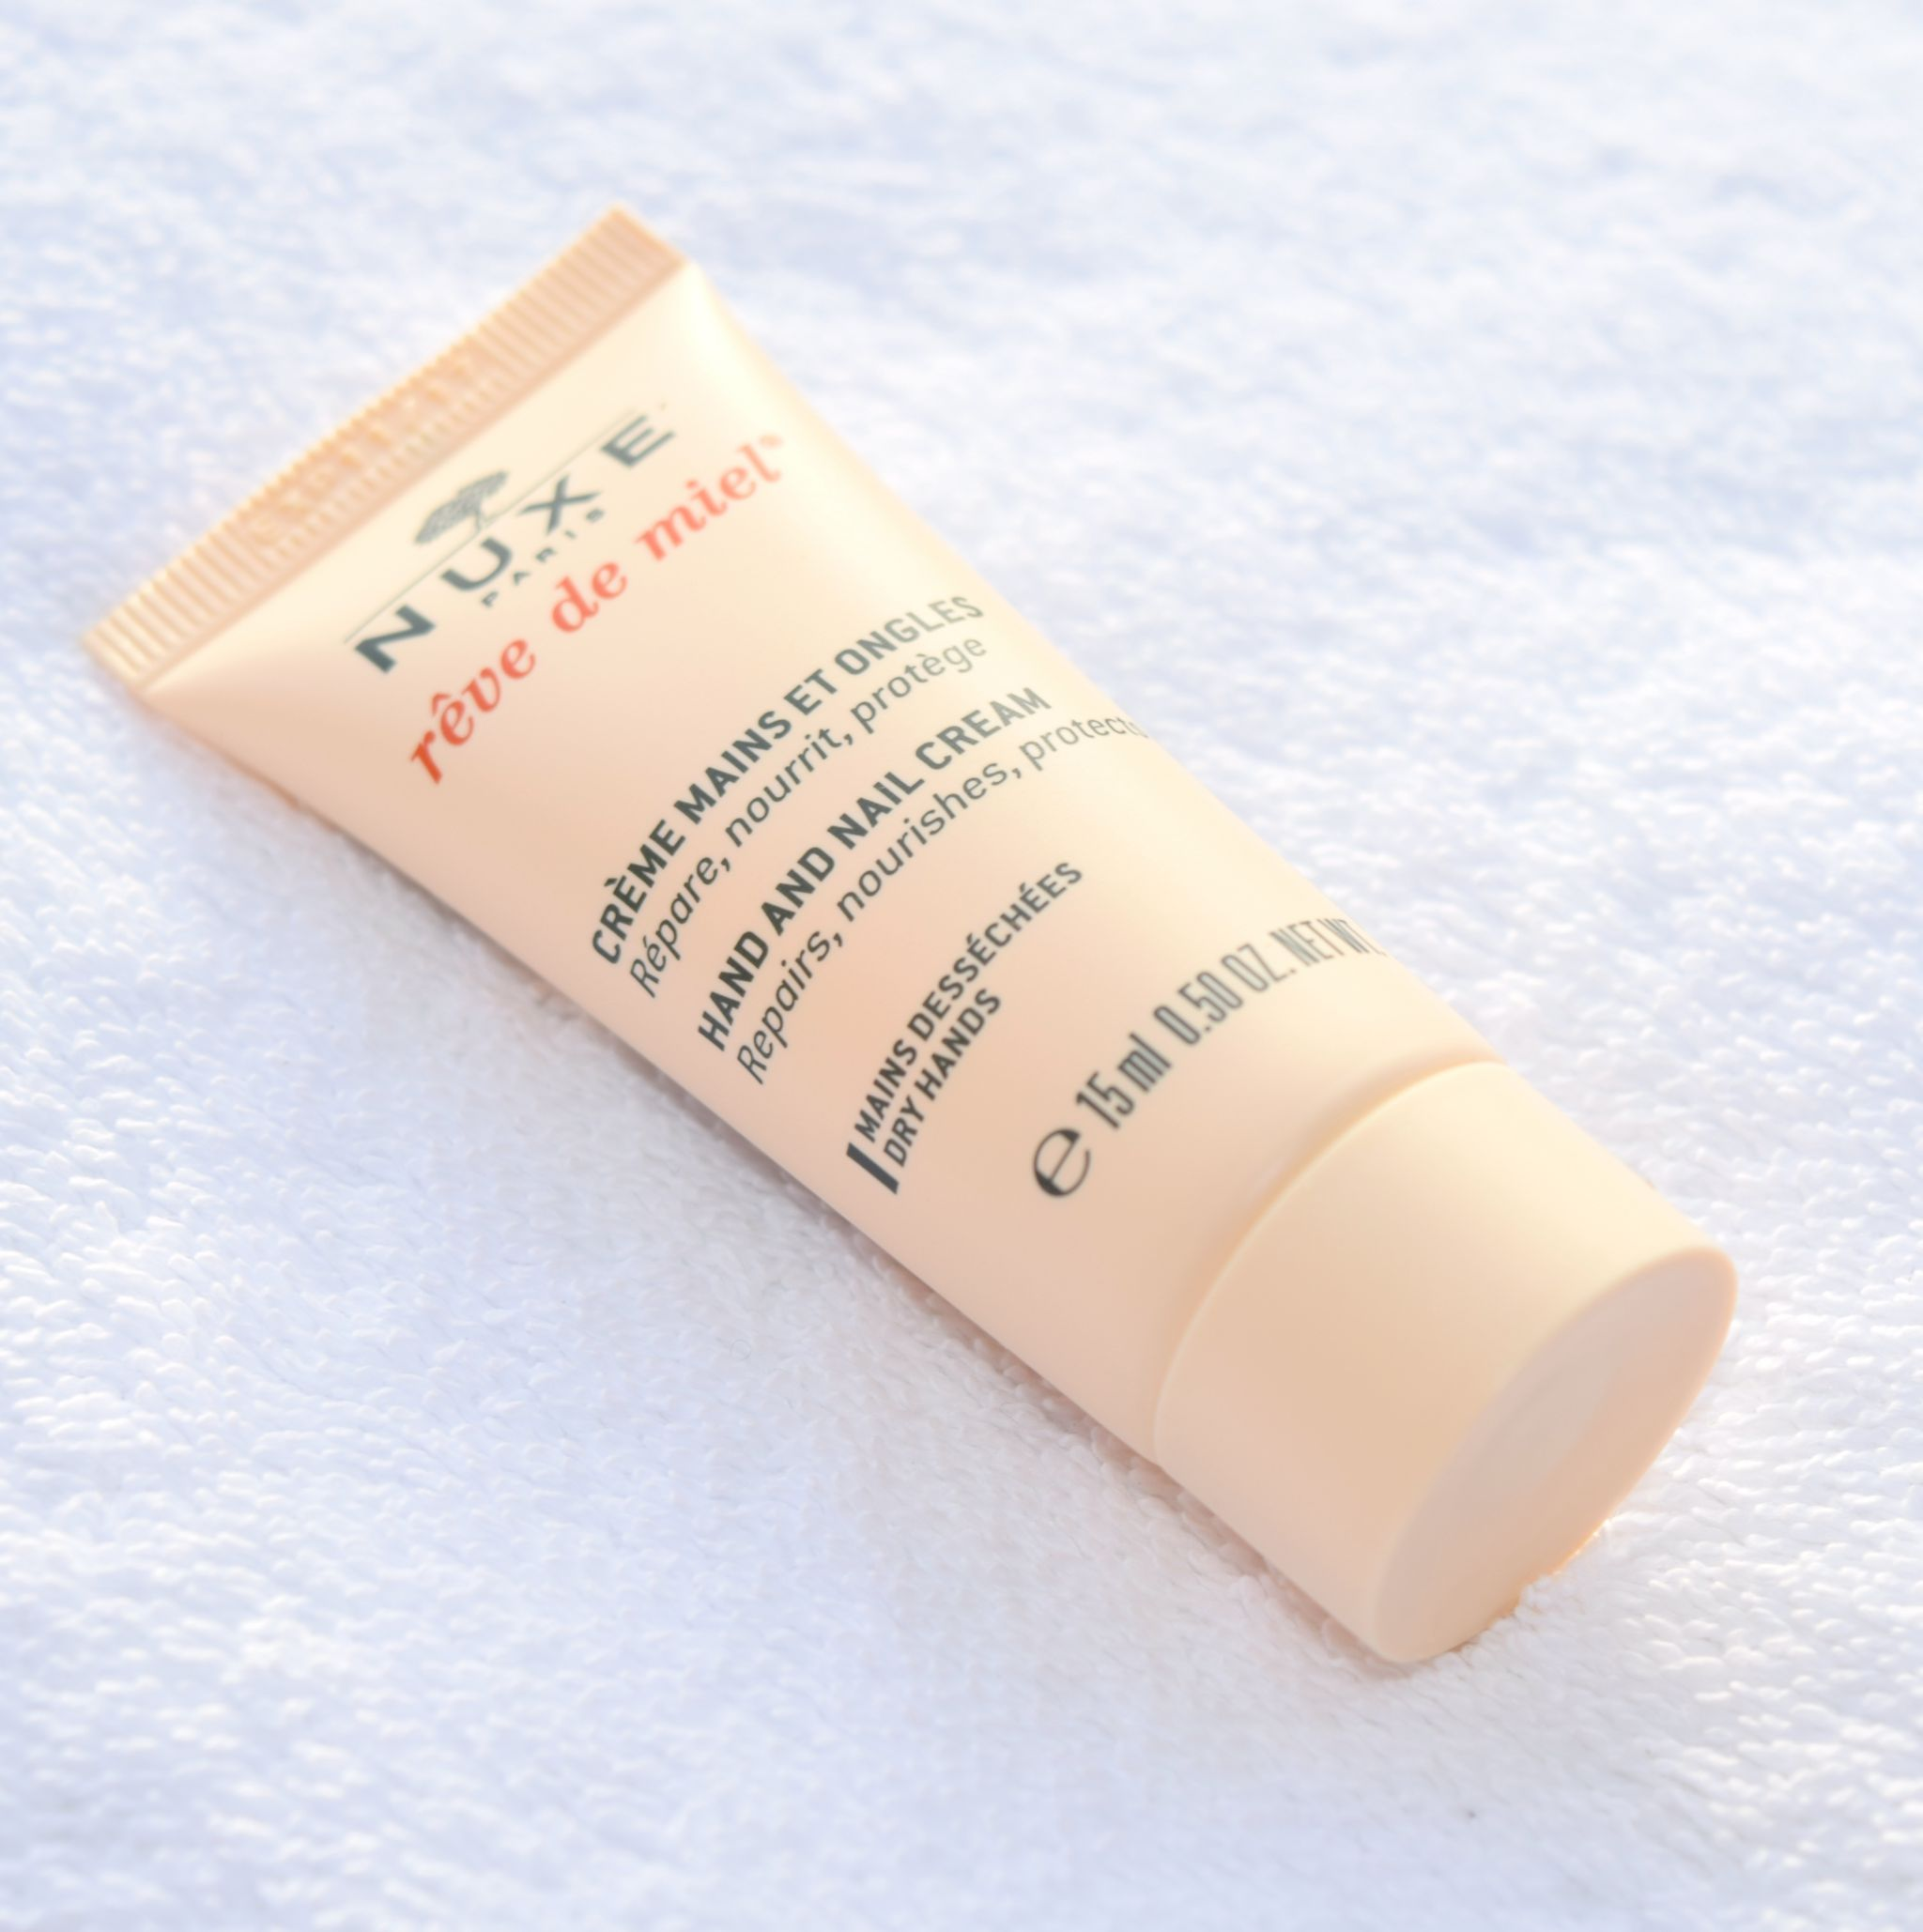 Nuxe Cracker reve de miel hand and nail cream